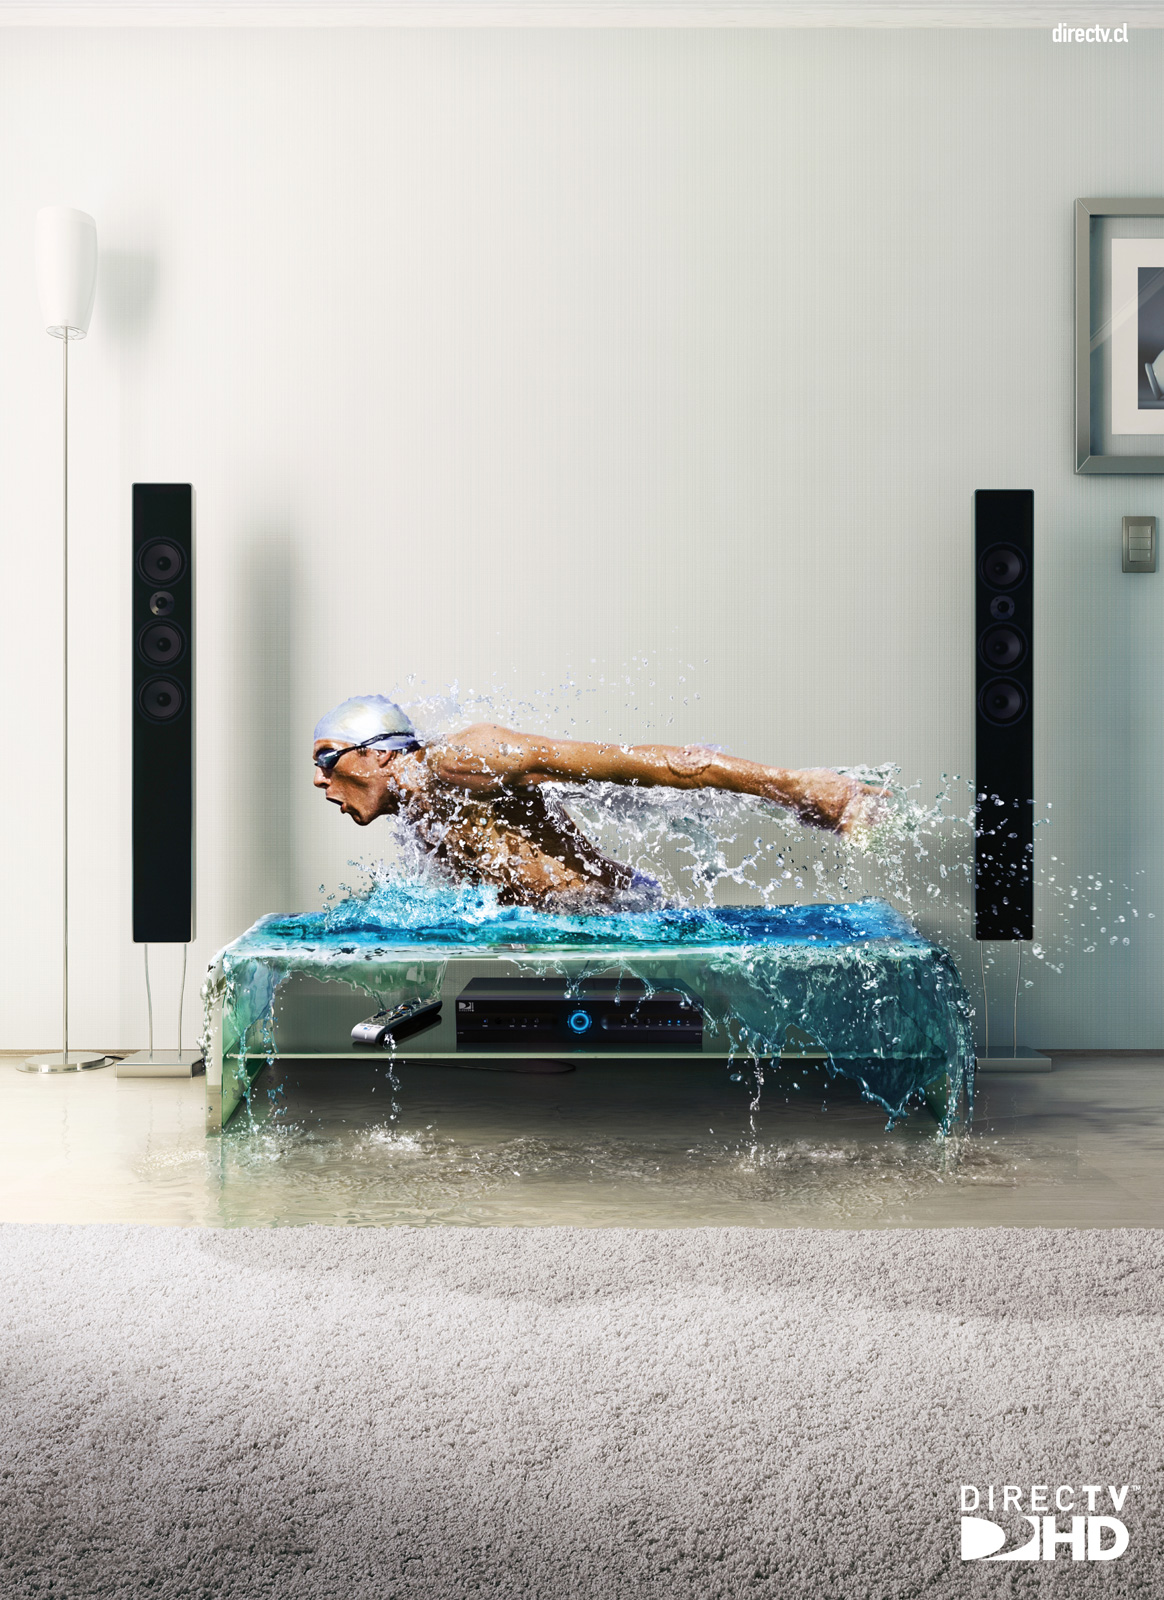 Creative Ads for DirectTV | Daily Inspiration